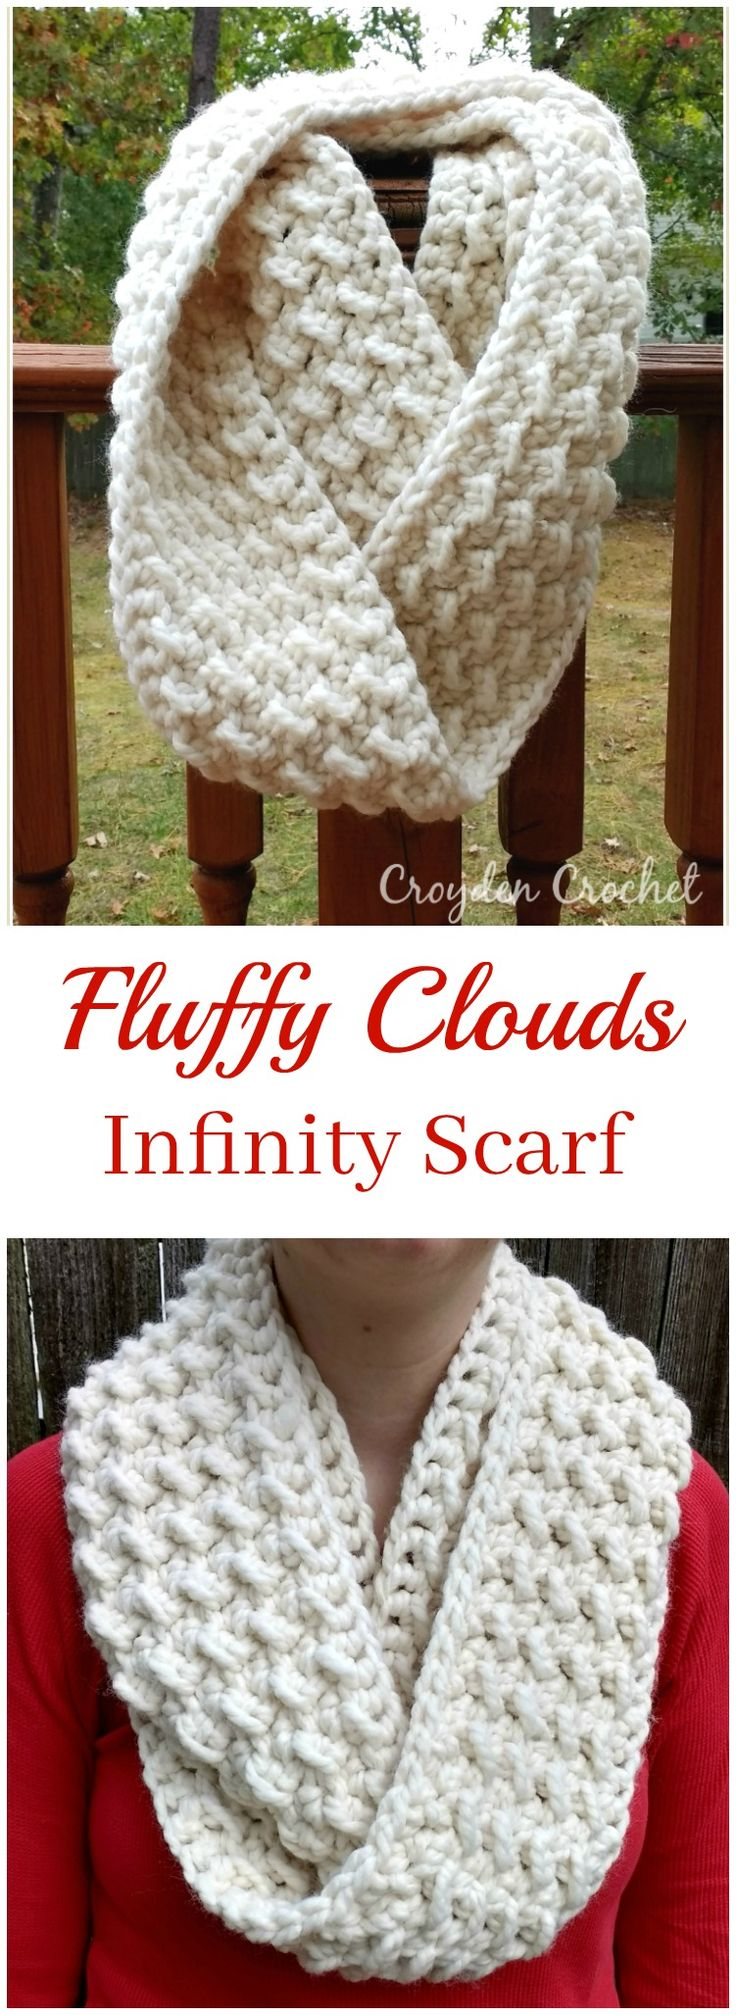 FREE CROCHET PATTERN - The gorgeous and chunky infinity scarf is so easy to make and in such little time!